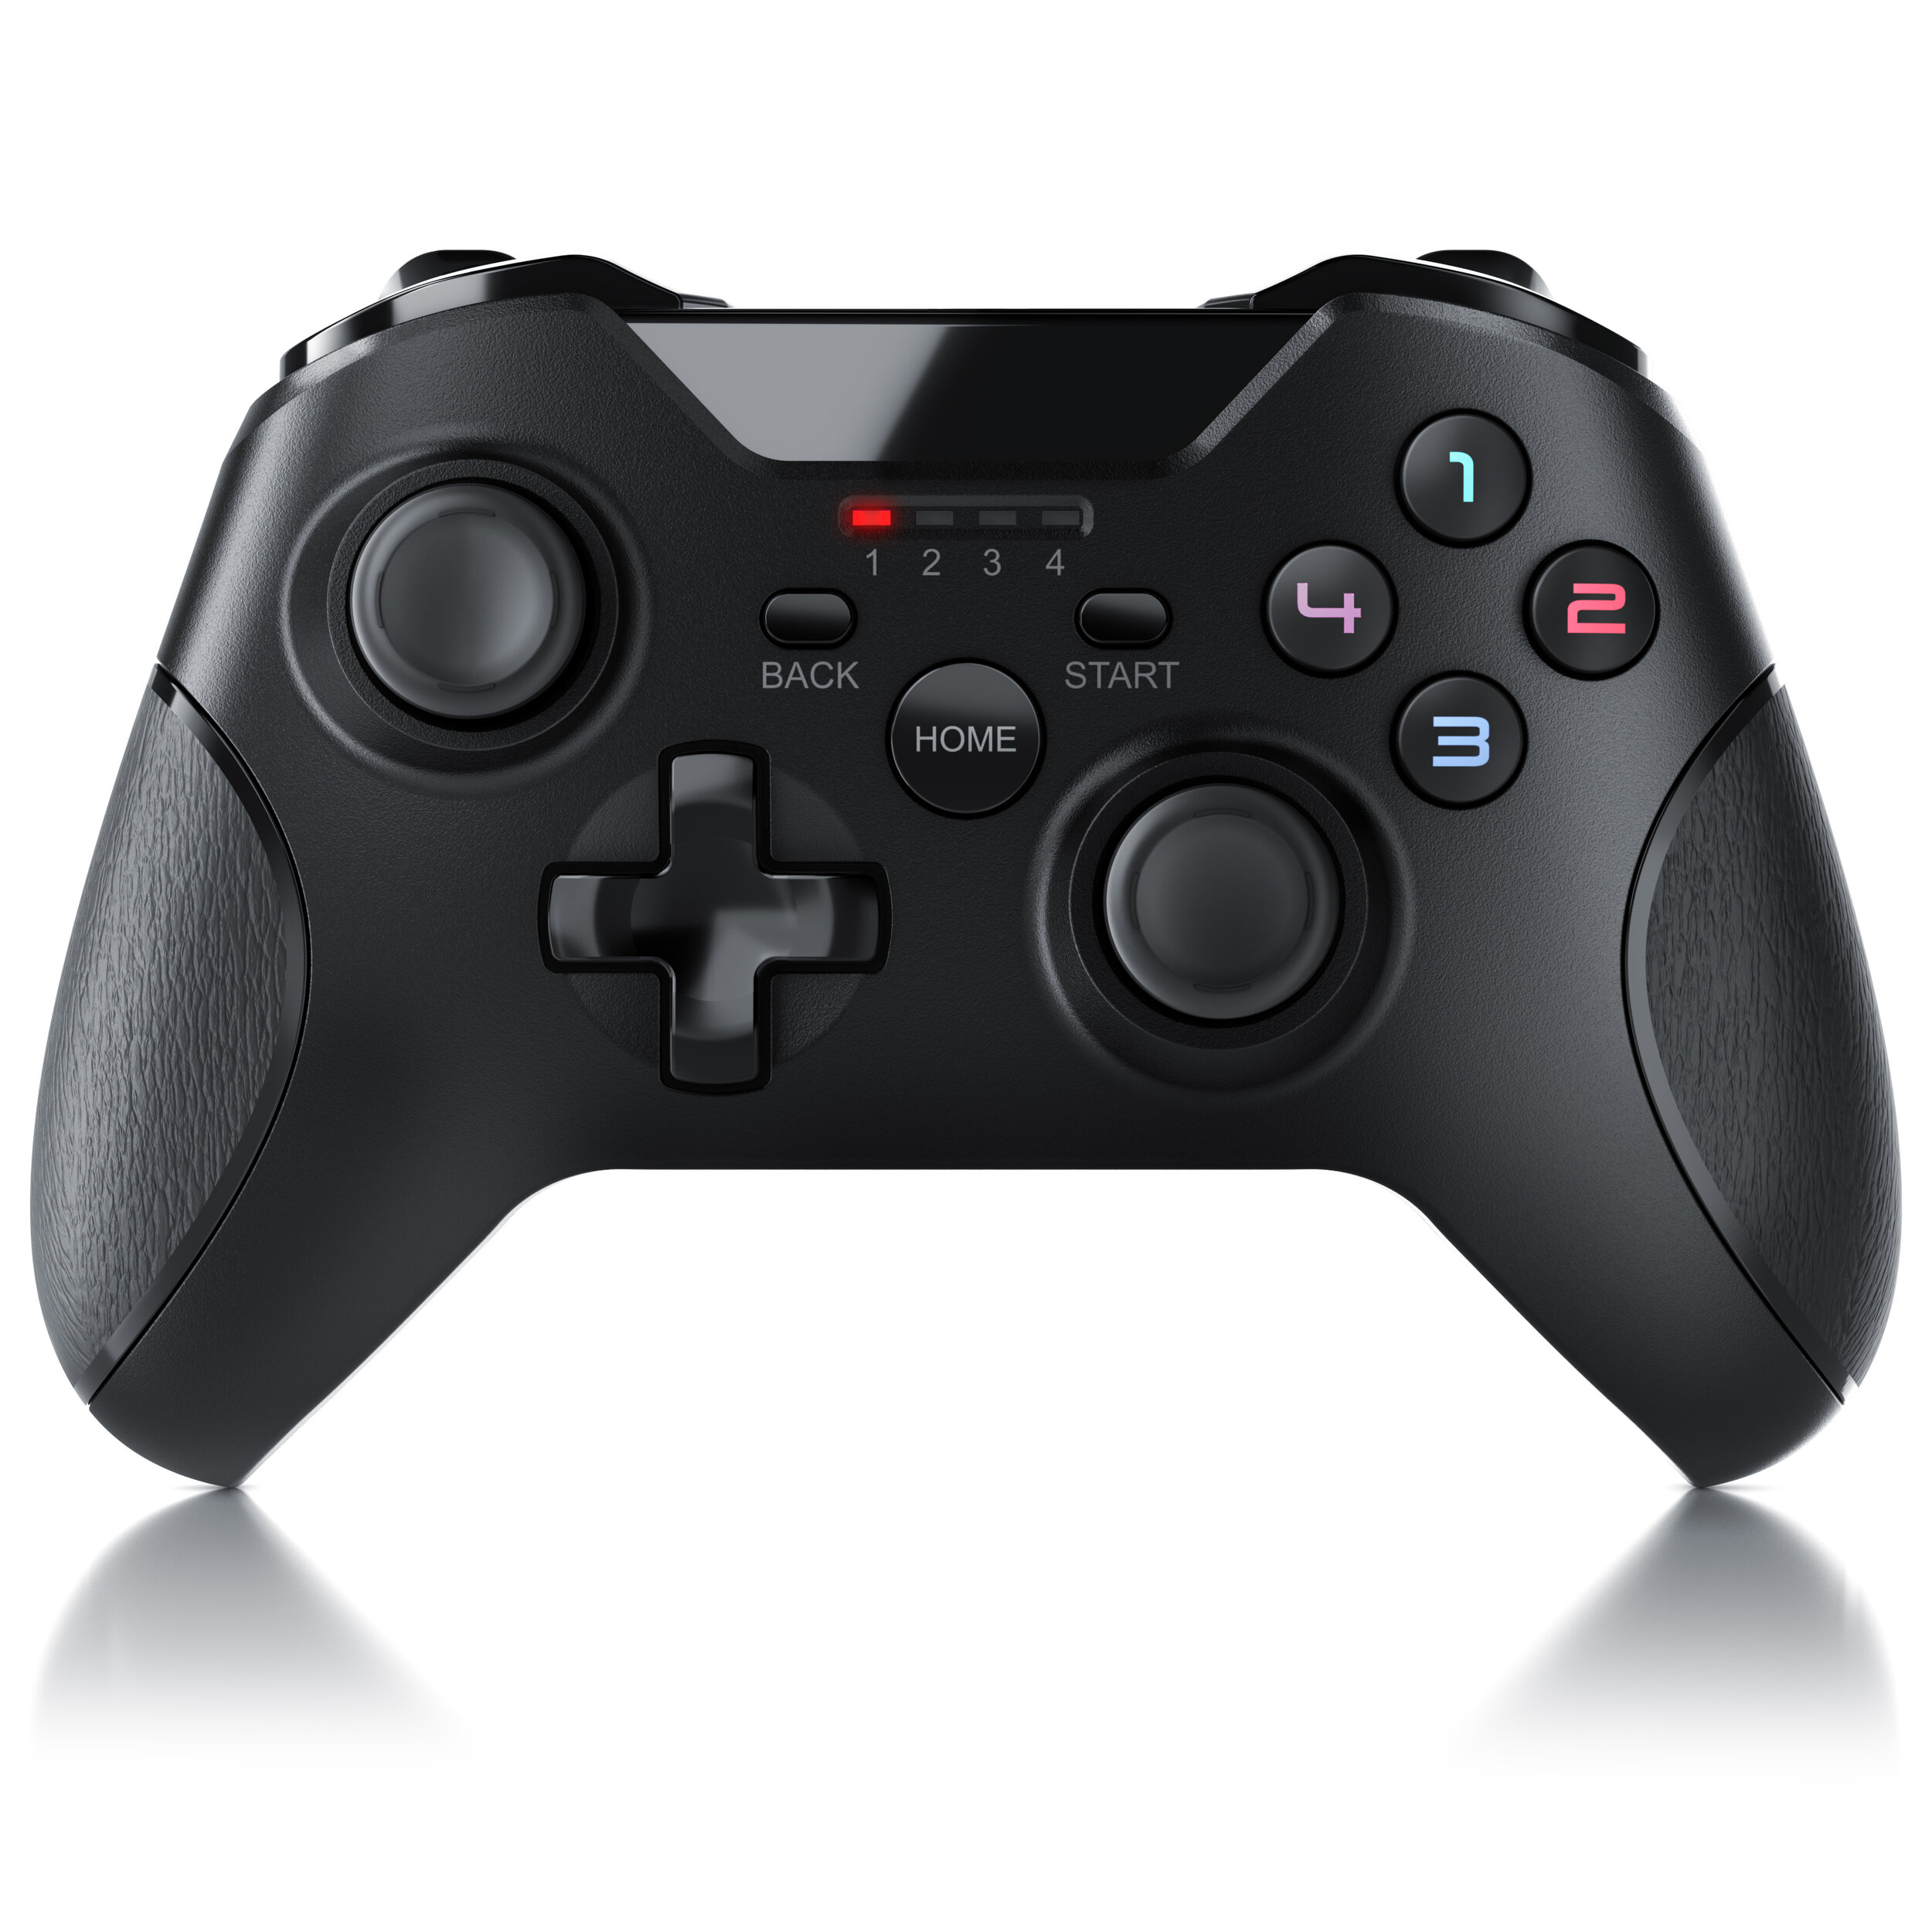 303674_GamePad_for_PC_Front.jpg